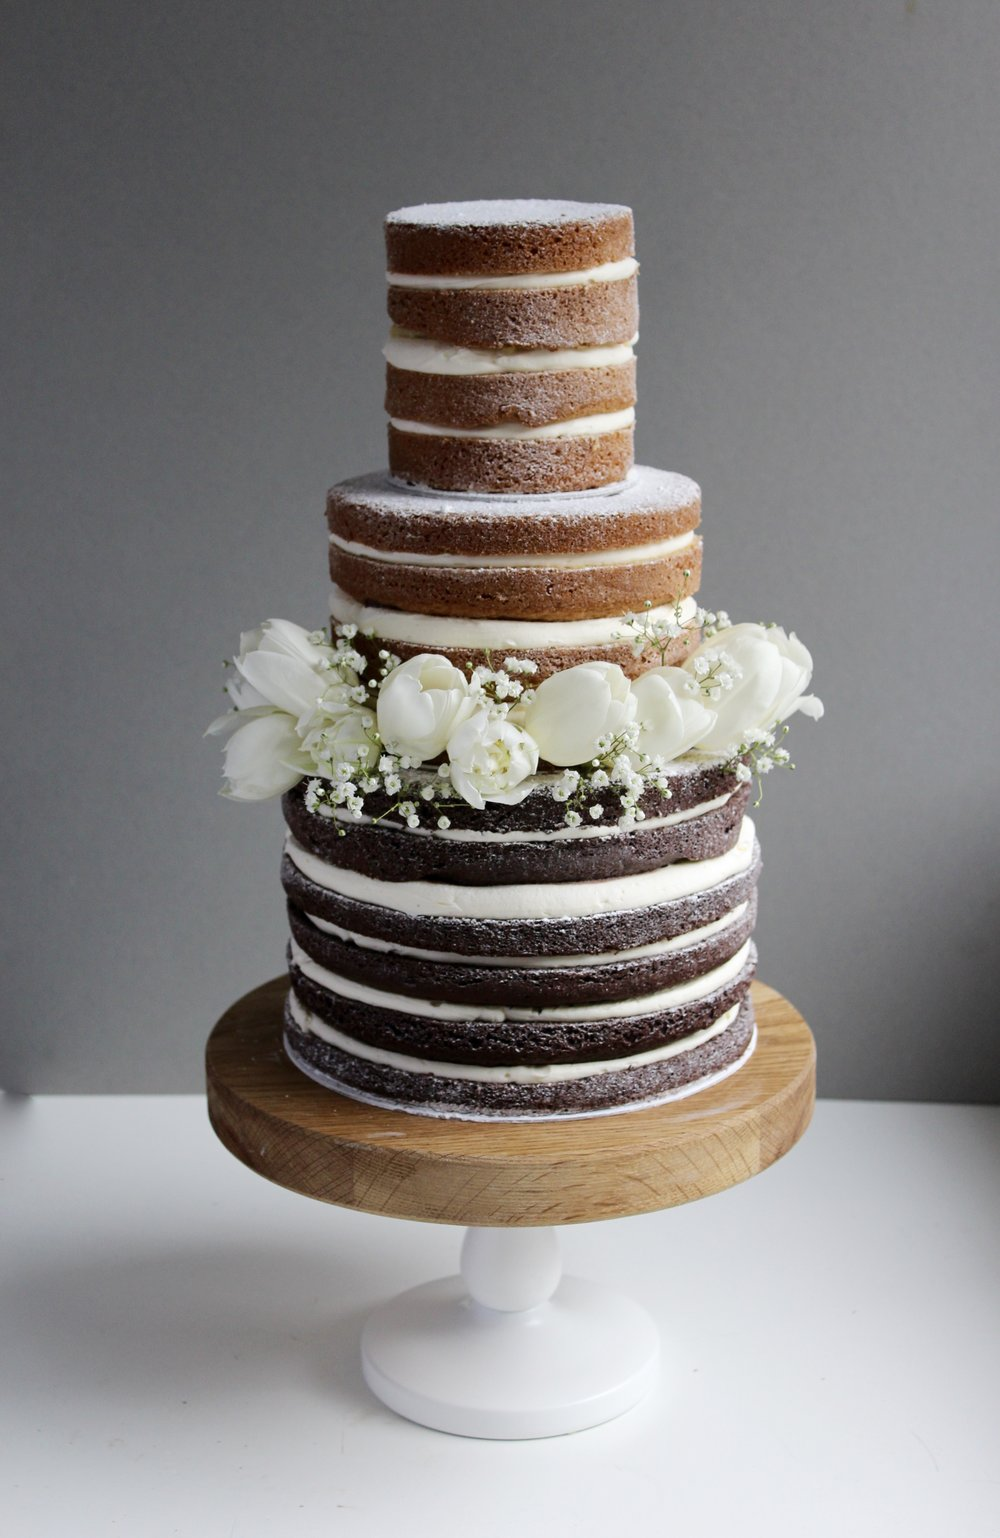 Simplistic, Minimalist Naked Wedding Cake by Yolk www.cakesbyyolk.com